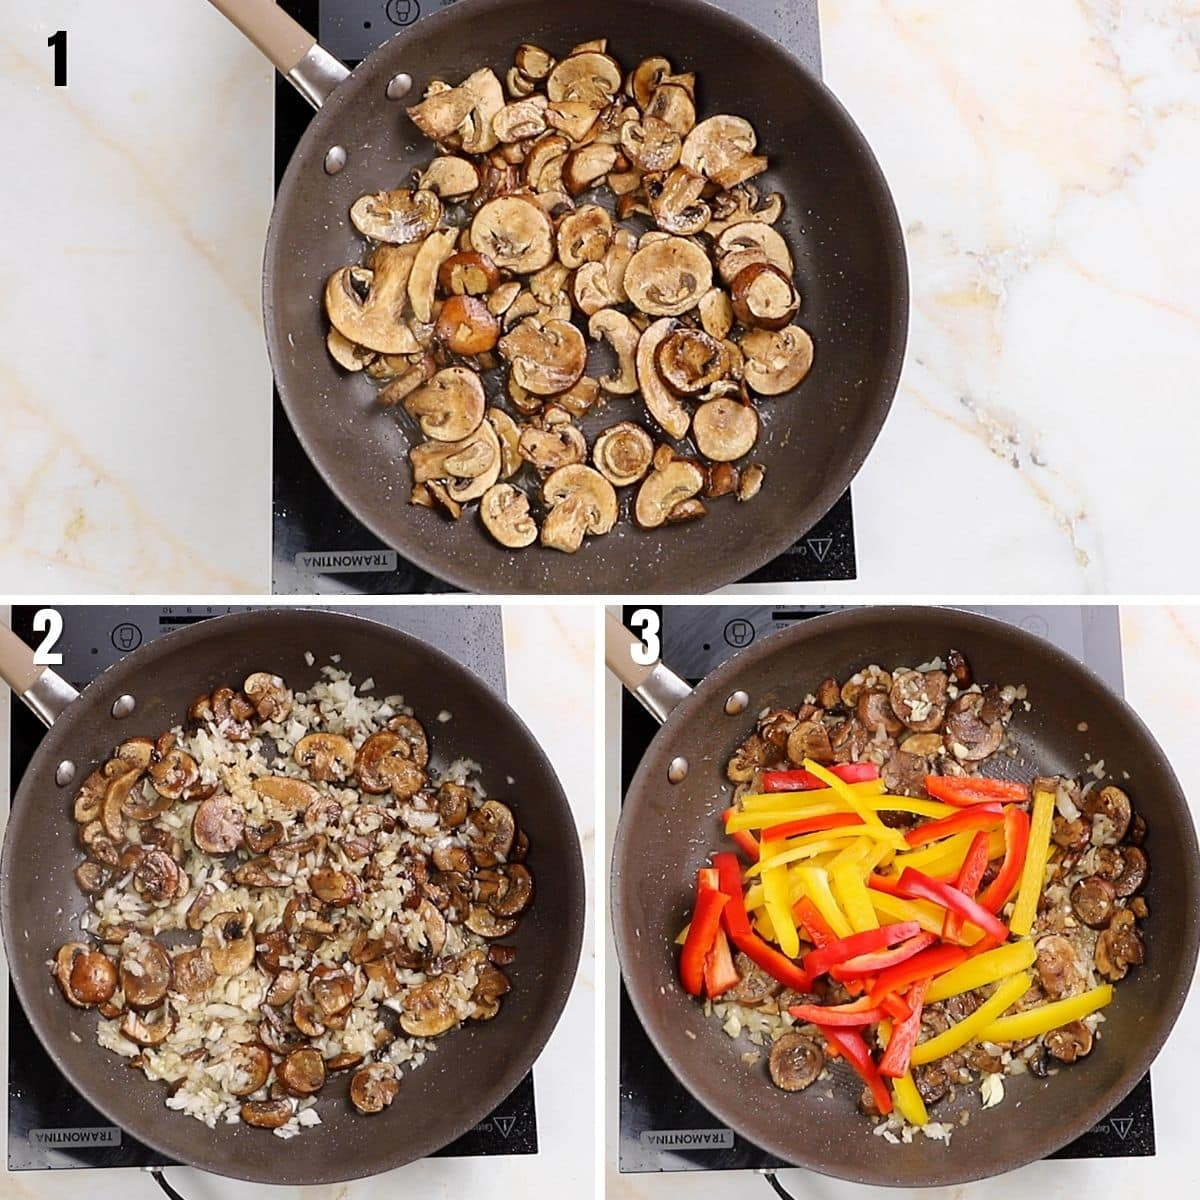 A collage of three images for browning the mushroom and vegetables in a pan.